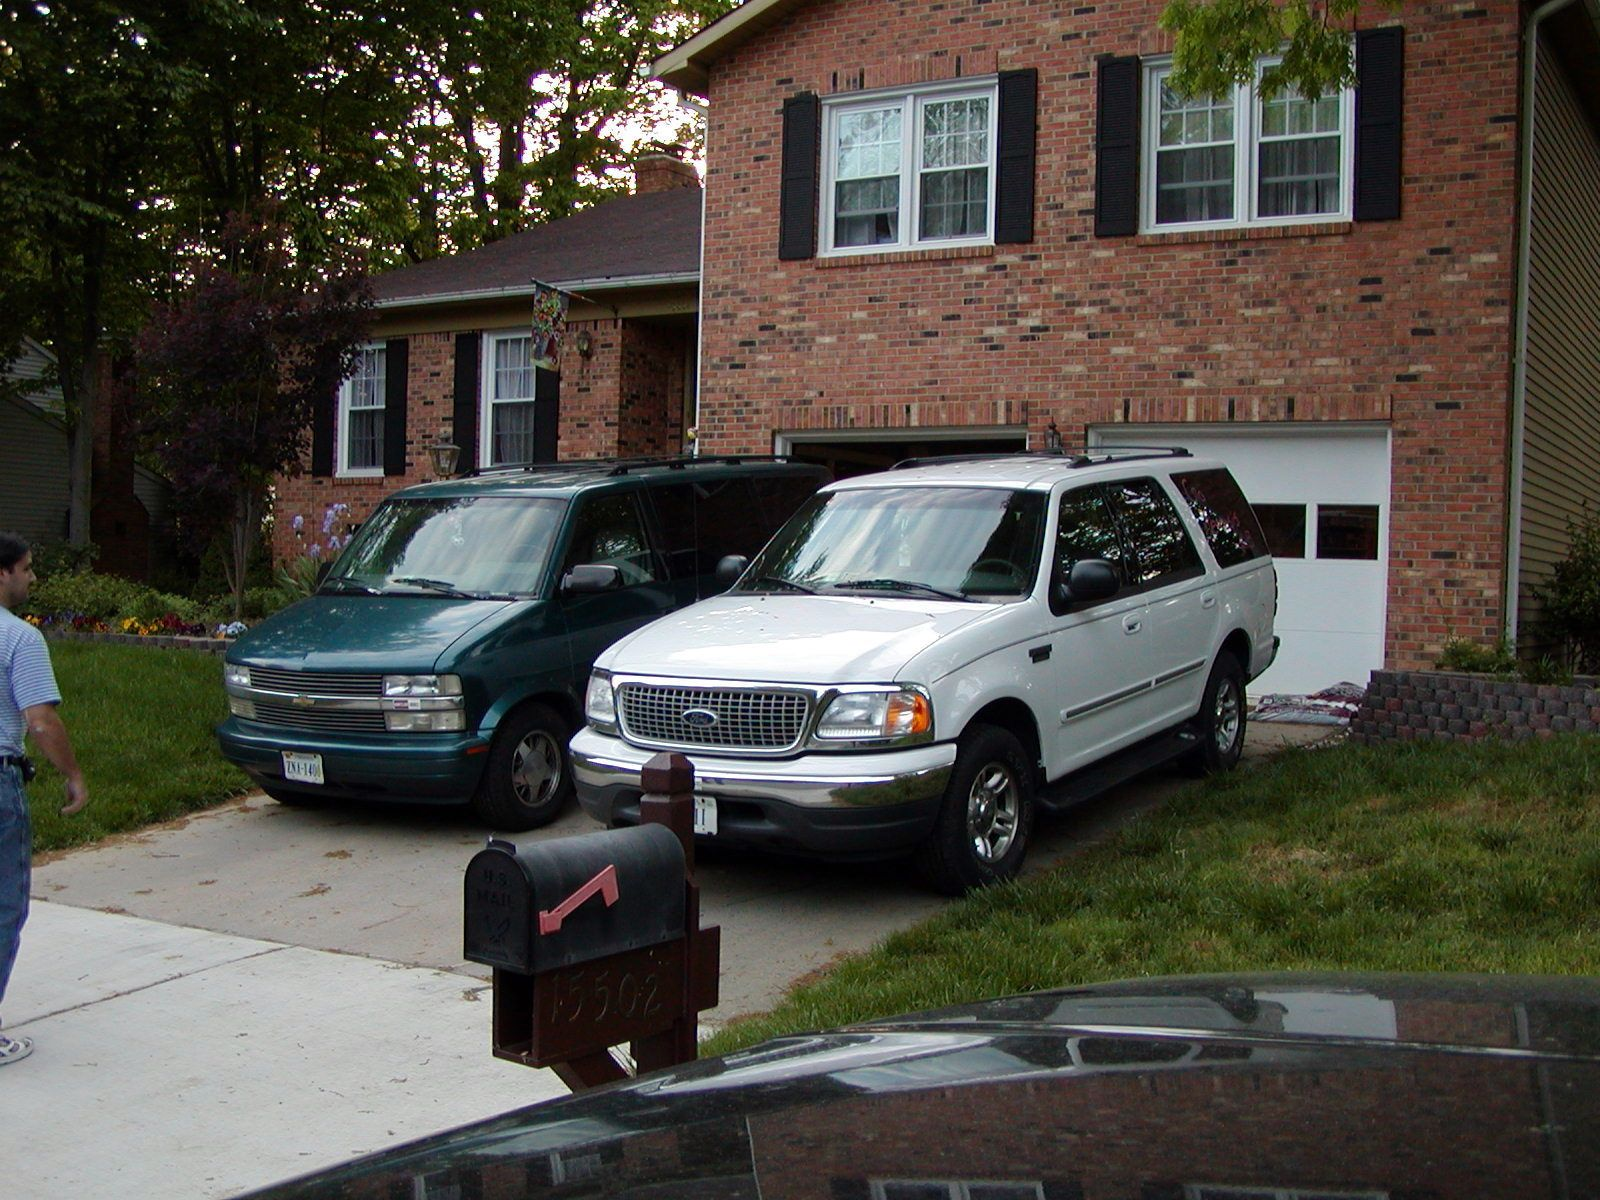 1999 Ford Expedition And 1995 Chevy Astro Van Vehicles